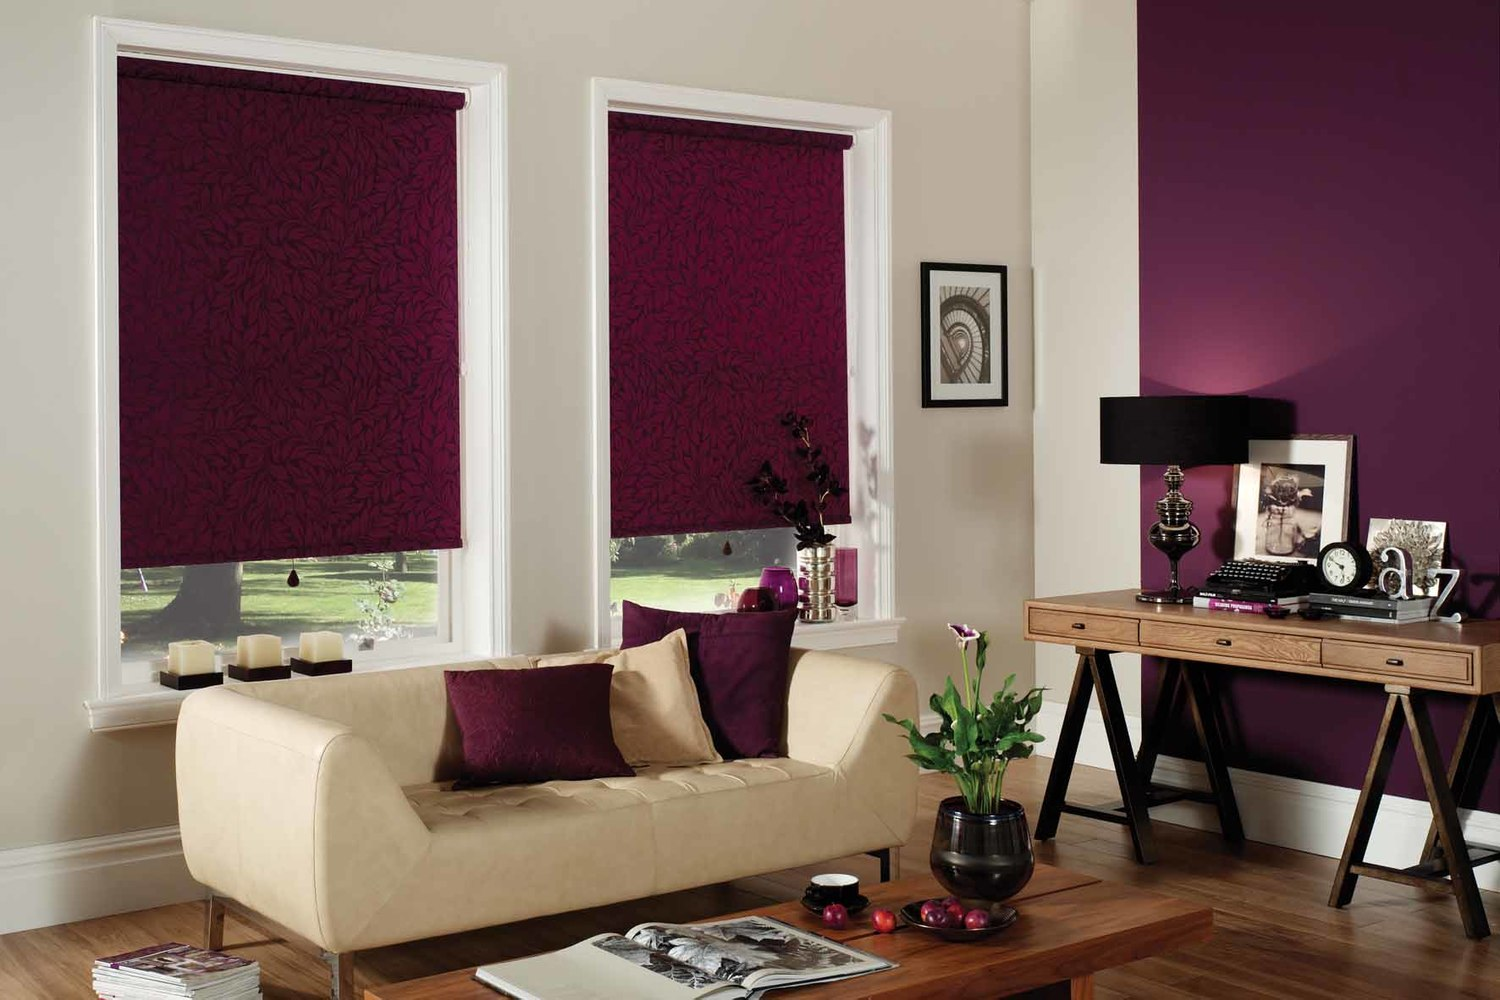 blinds made measure uk sale custom batley to image cheap window roller